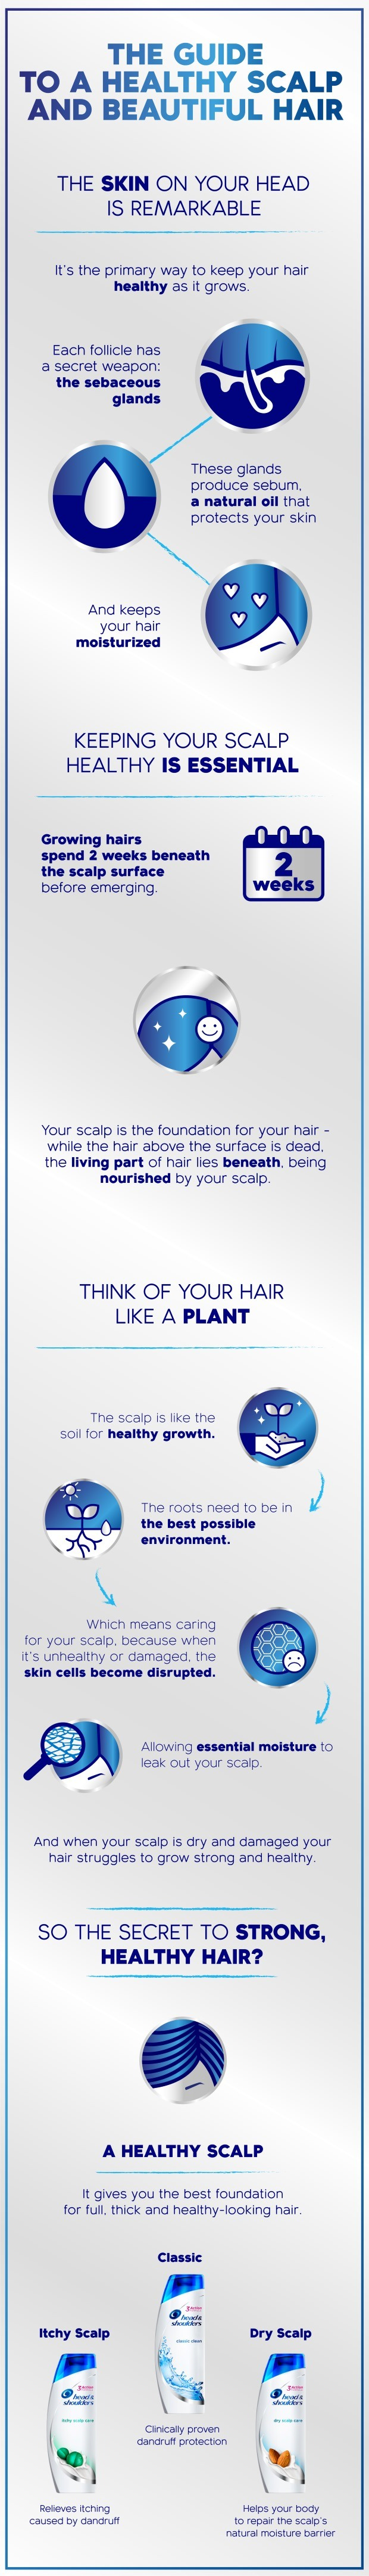 The guide to a healthy scalp and beautiful hair